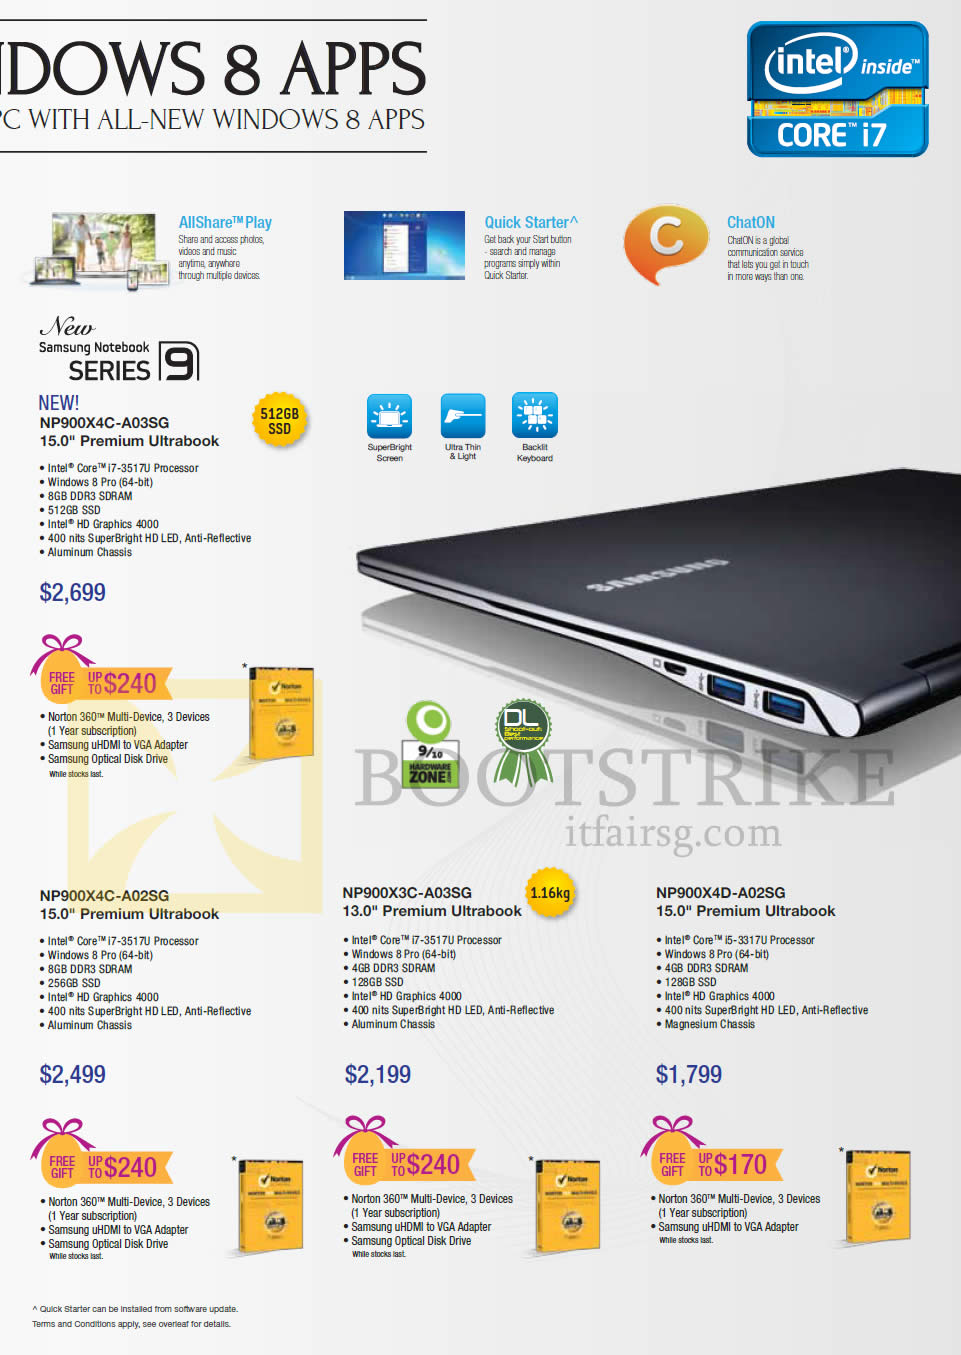 IT SHOW 2013 price list image brochure of Samsung Notebooks Series 9 NP900X4C-A03SG Ultrabook, NP900X4C-A02SG, NP900X3C-A03SG, NP900X4D-A02SG